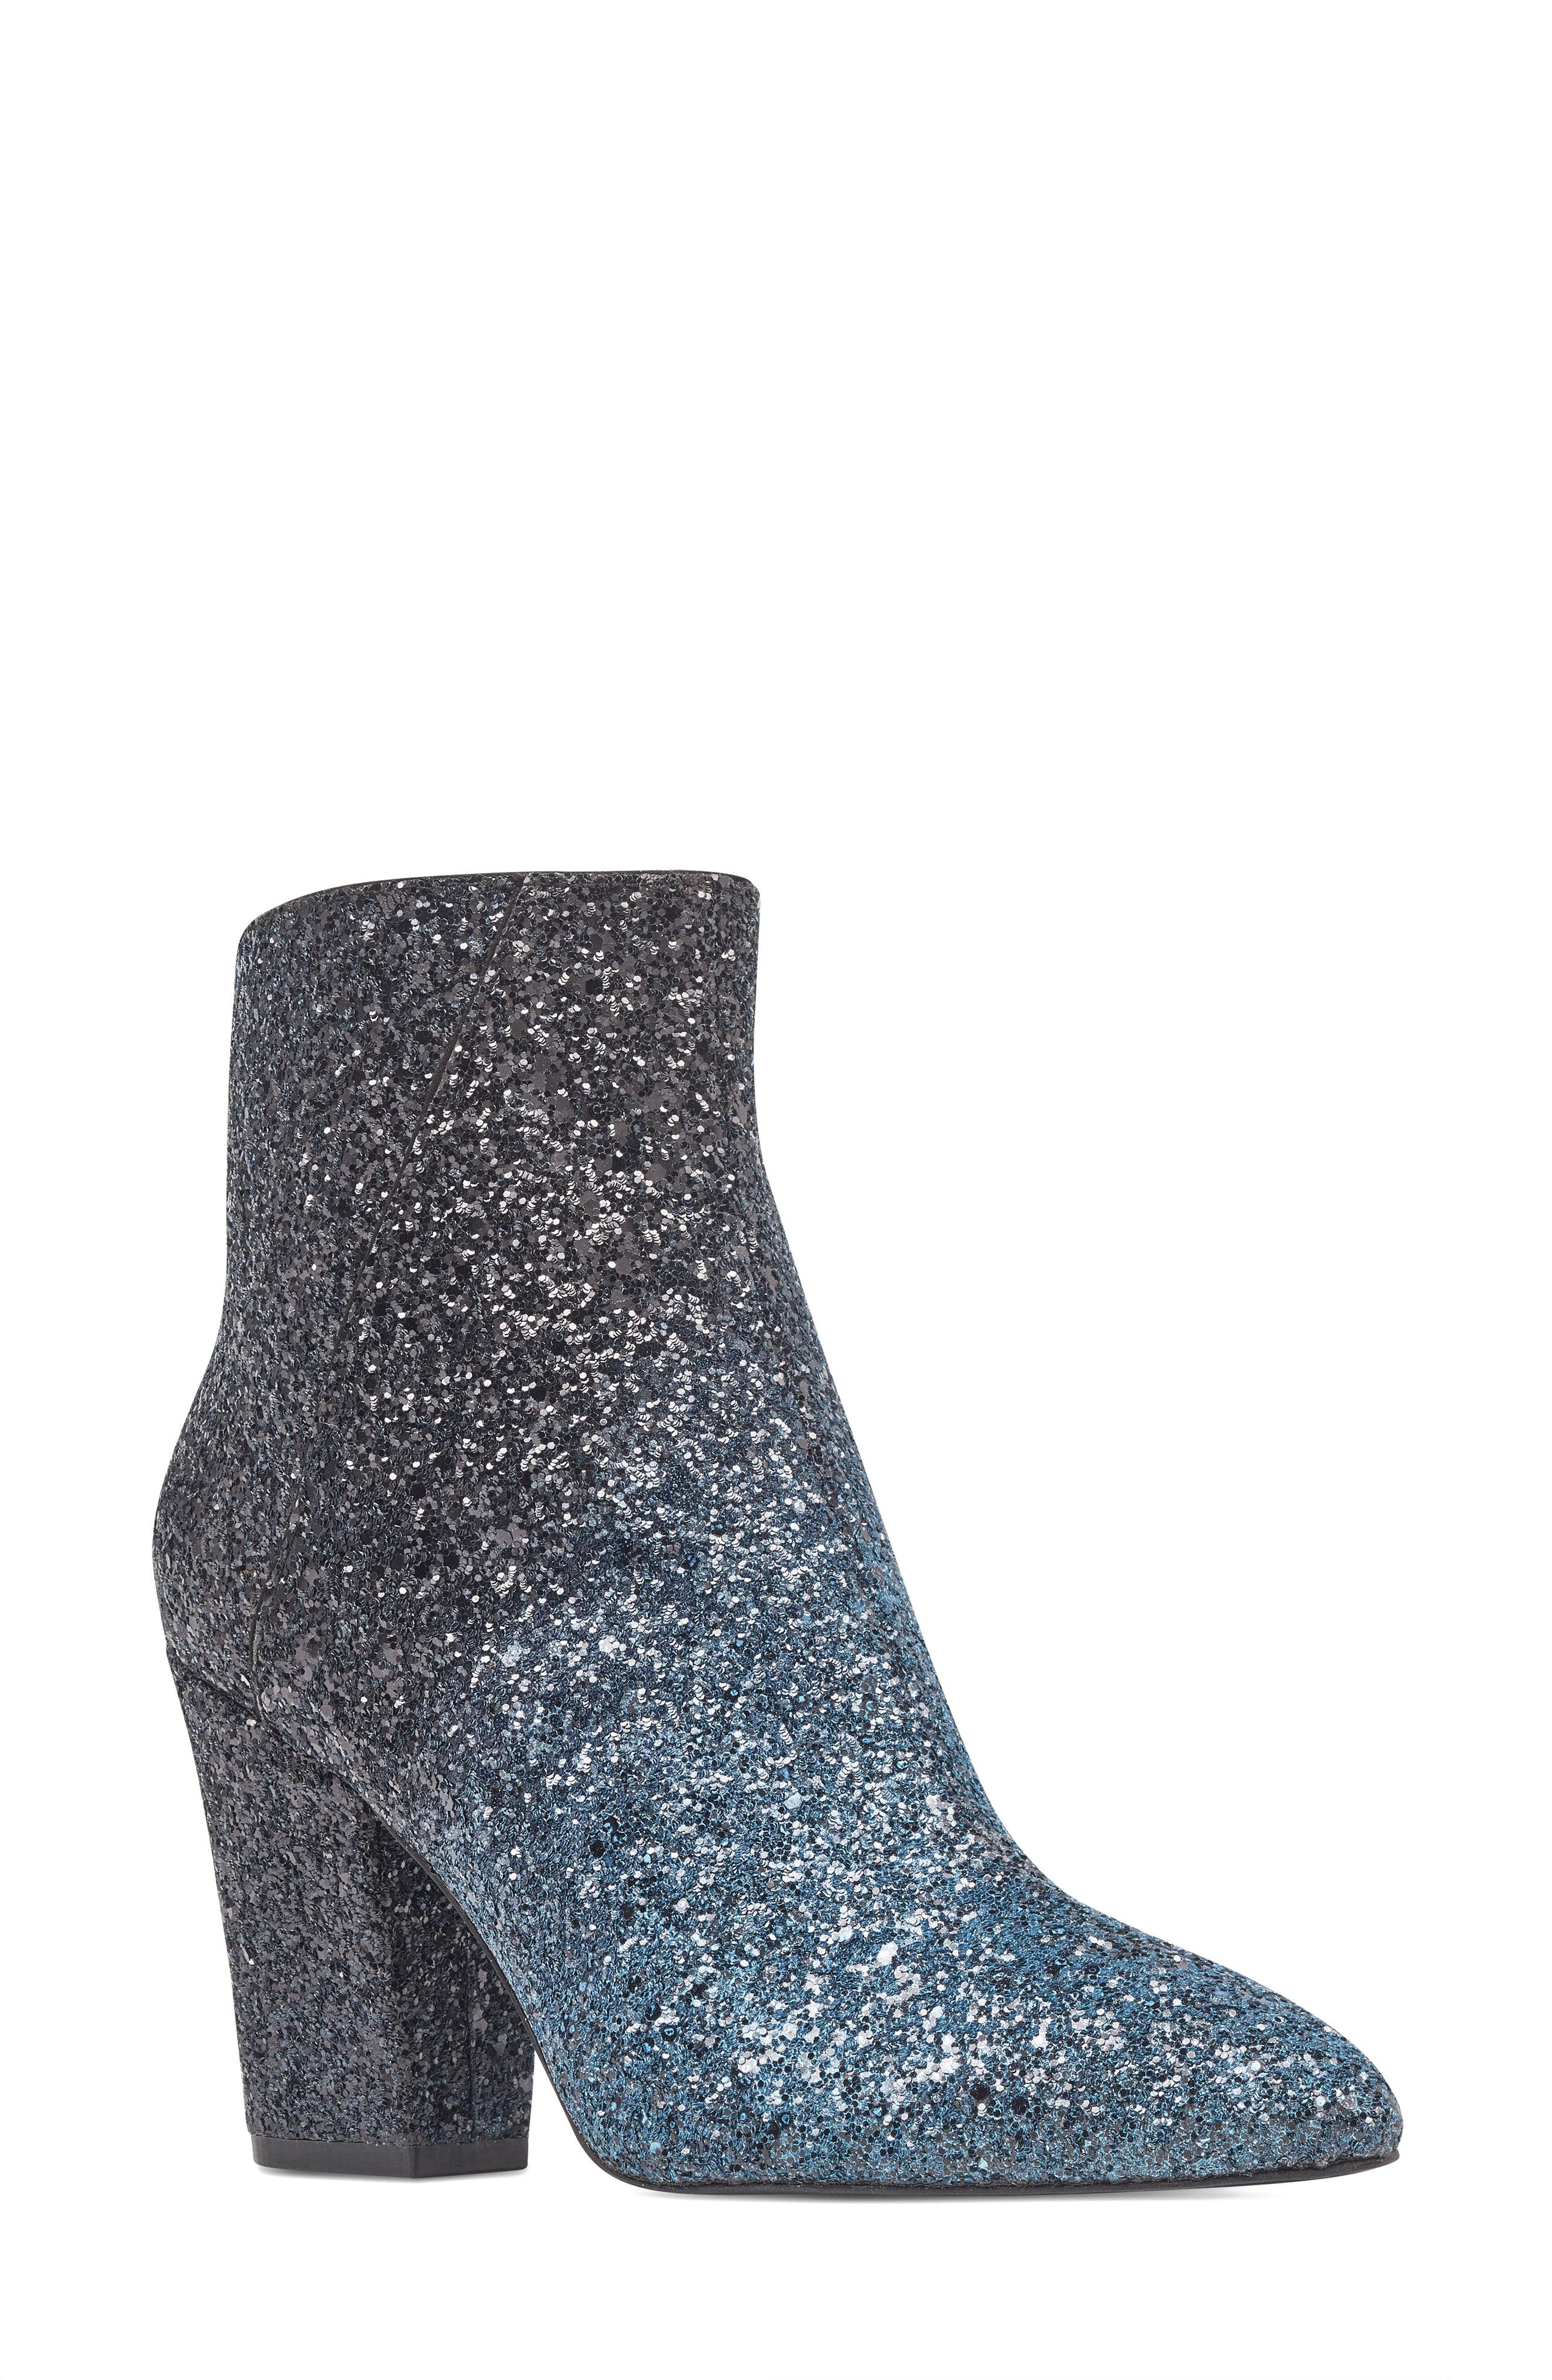 NINE WEST, Savitra Pointy Toe Bootie, Main thumbnail 1, color, 040